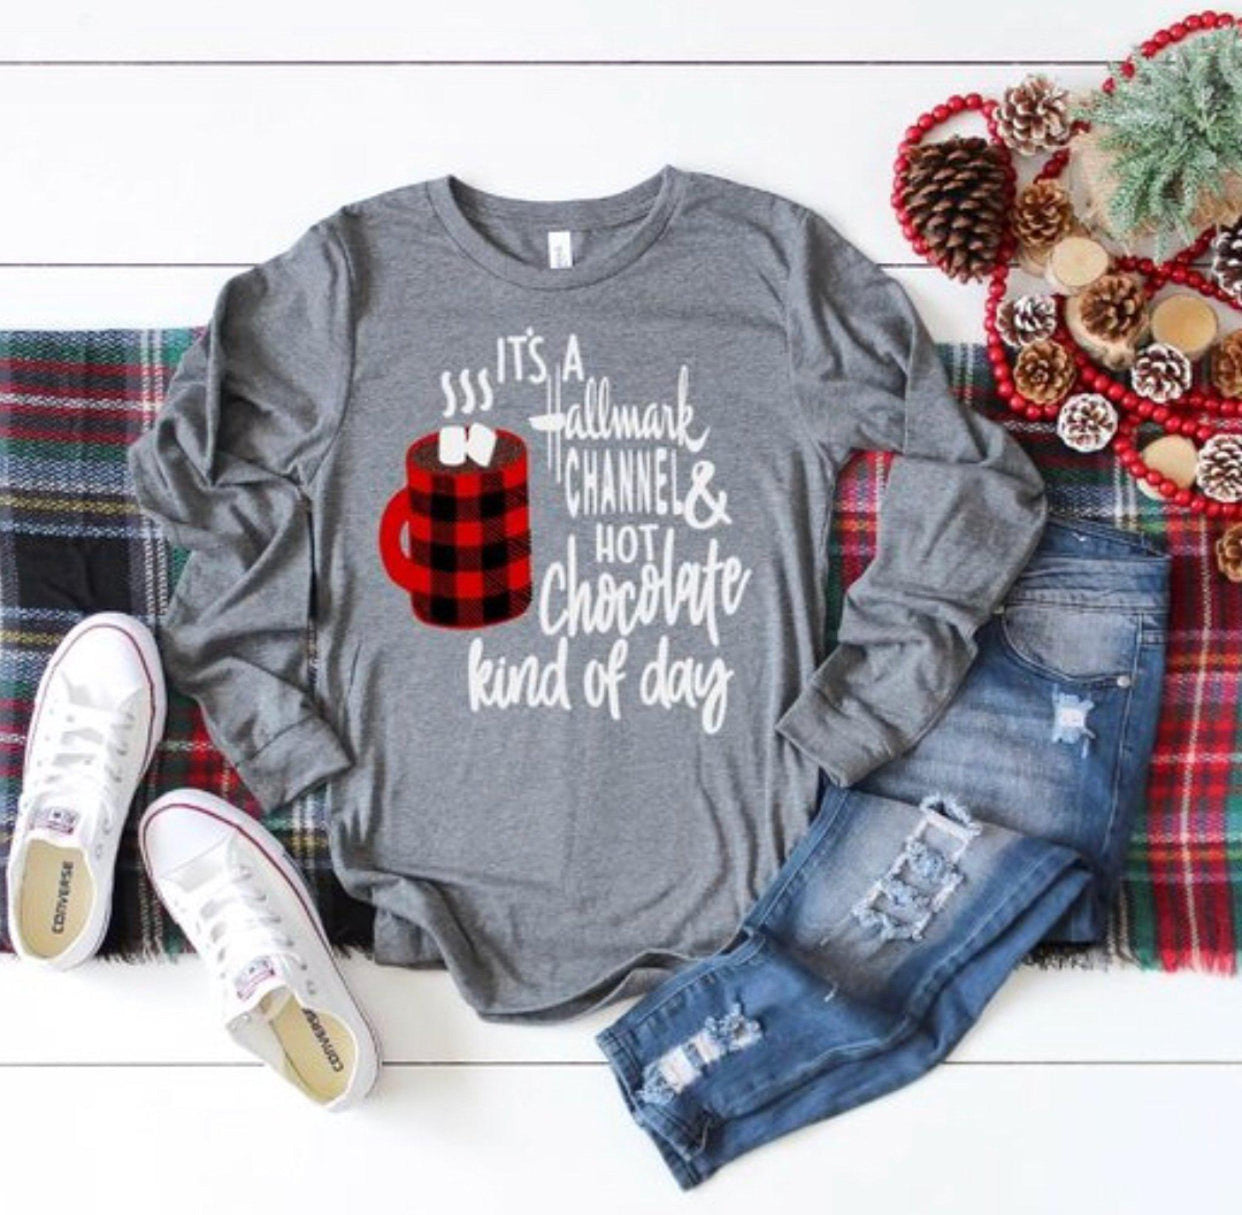 af04f4c2 Load image into Gallery viewer, Hallmark Christmas shirt ...